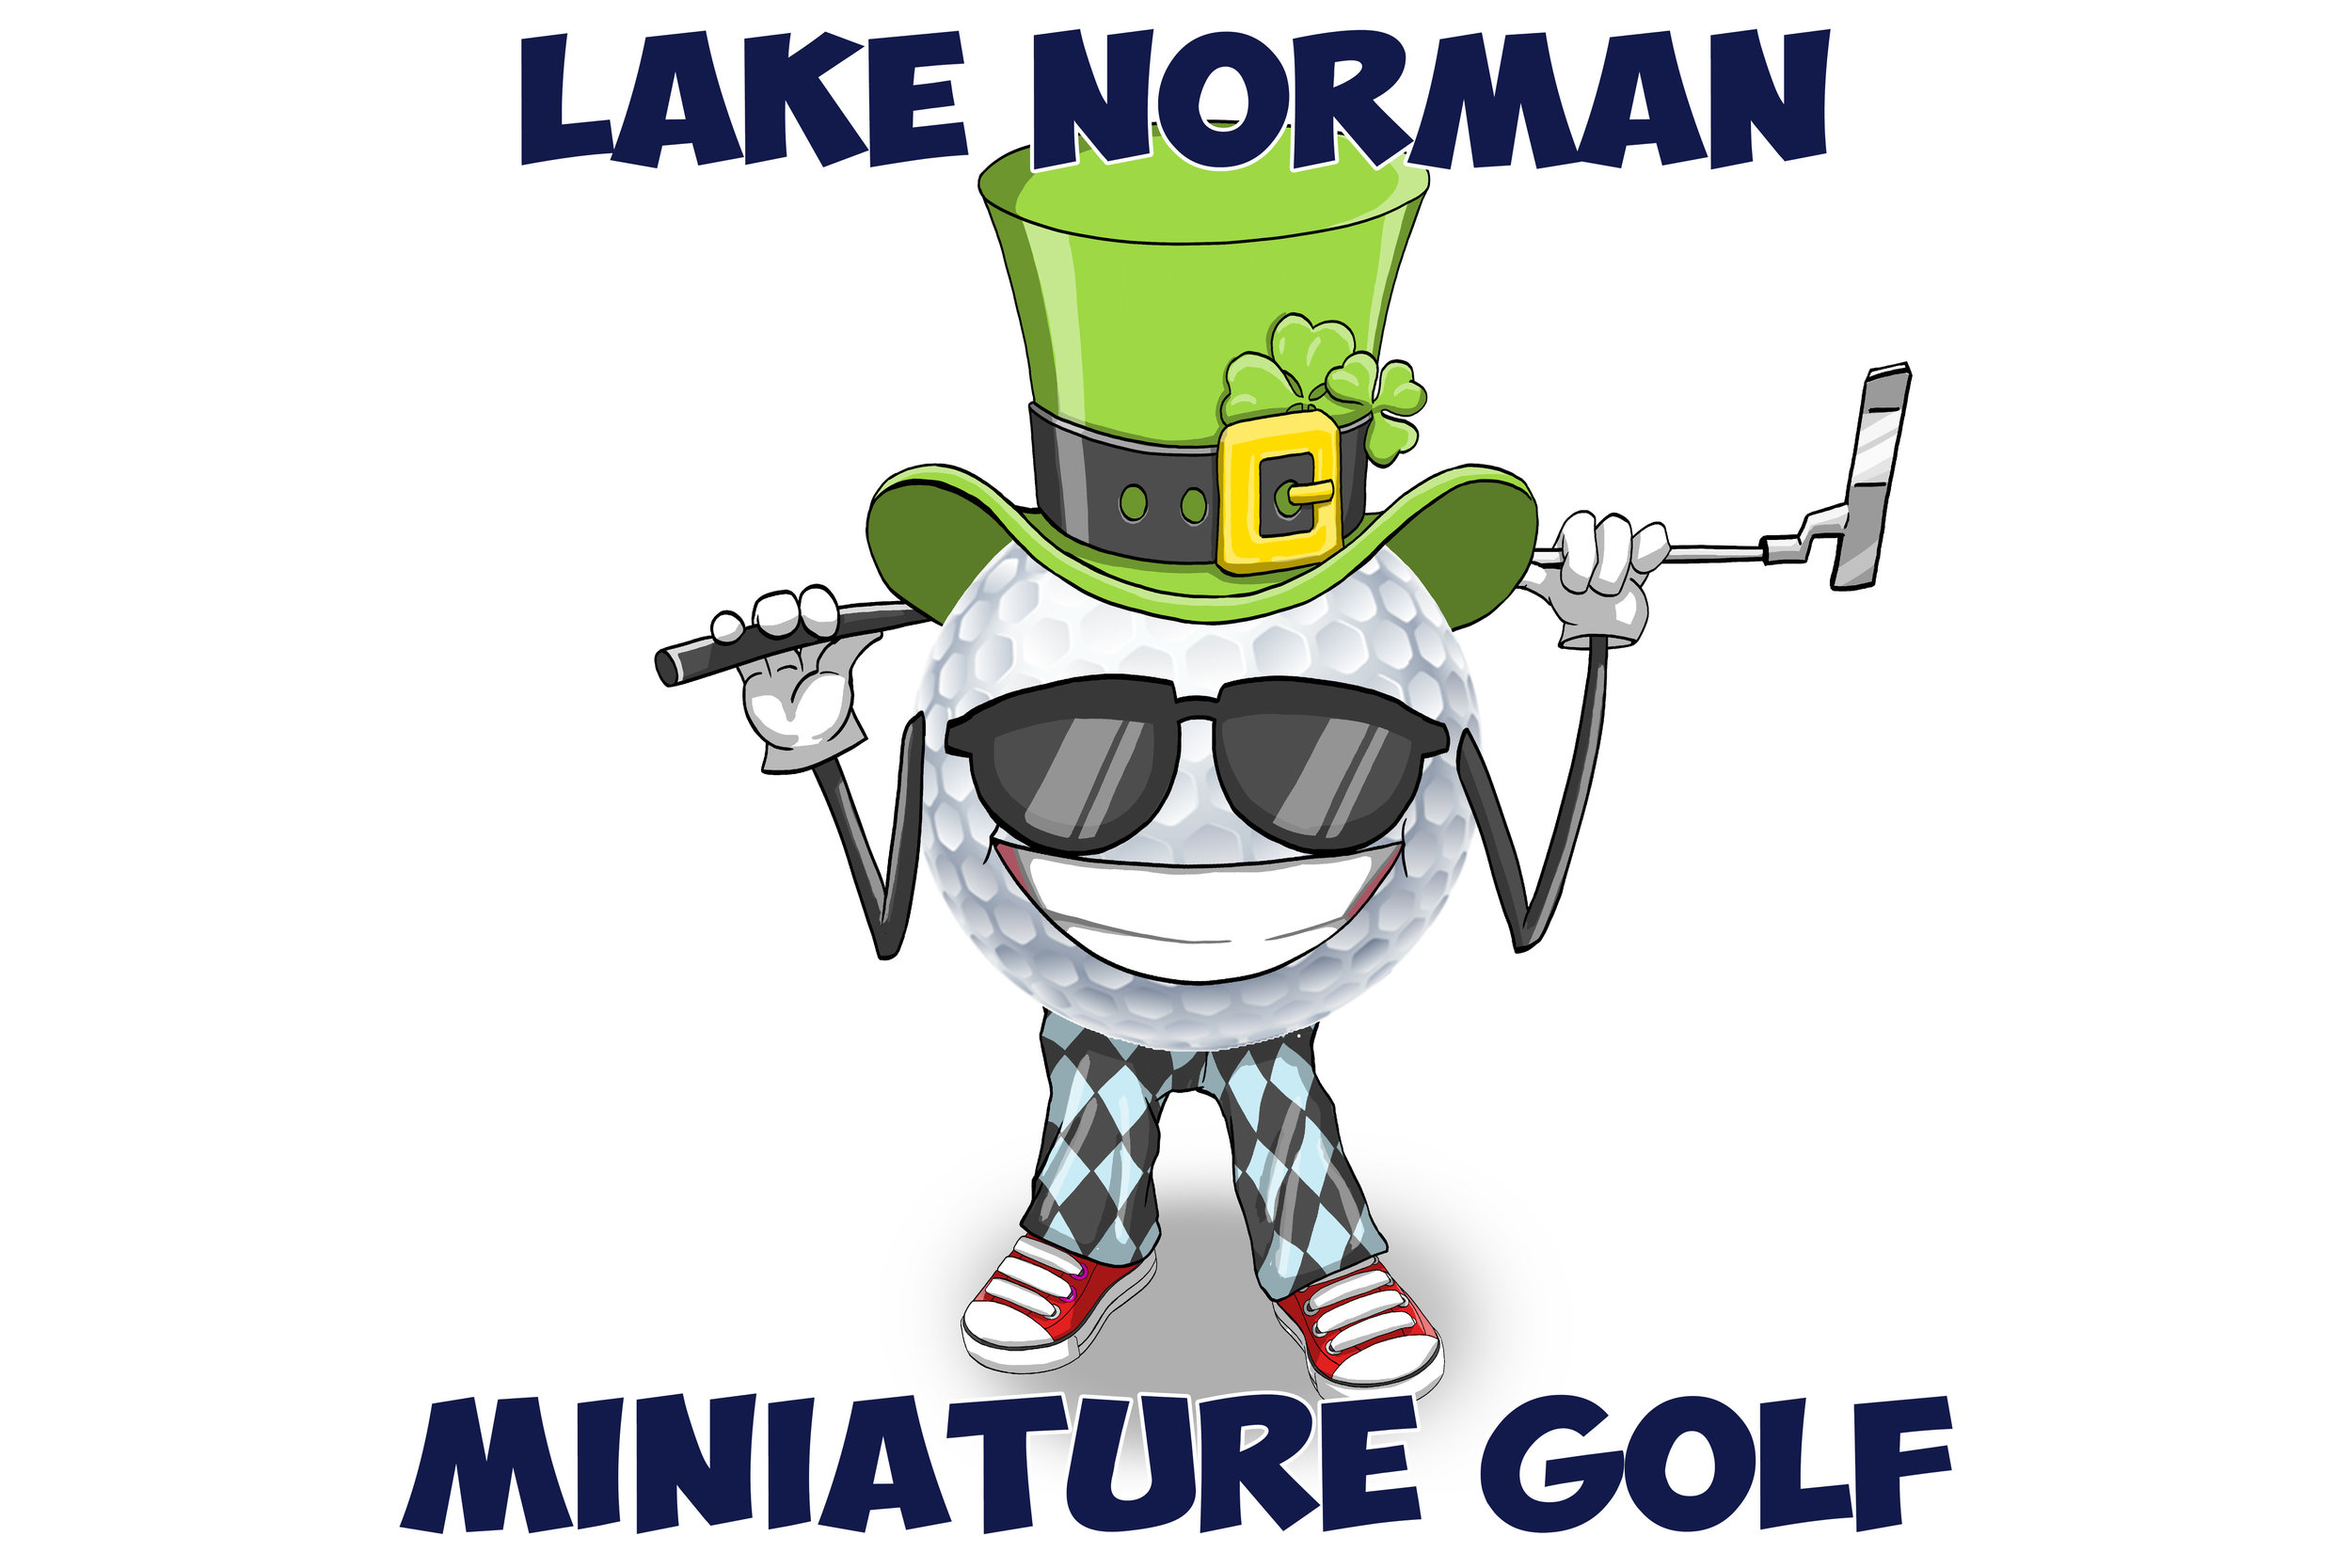 LKN Mini Golf Ball Cartoon 4.1.jpg